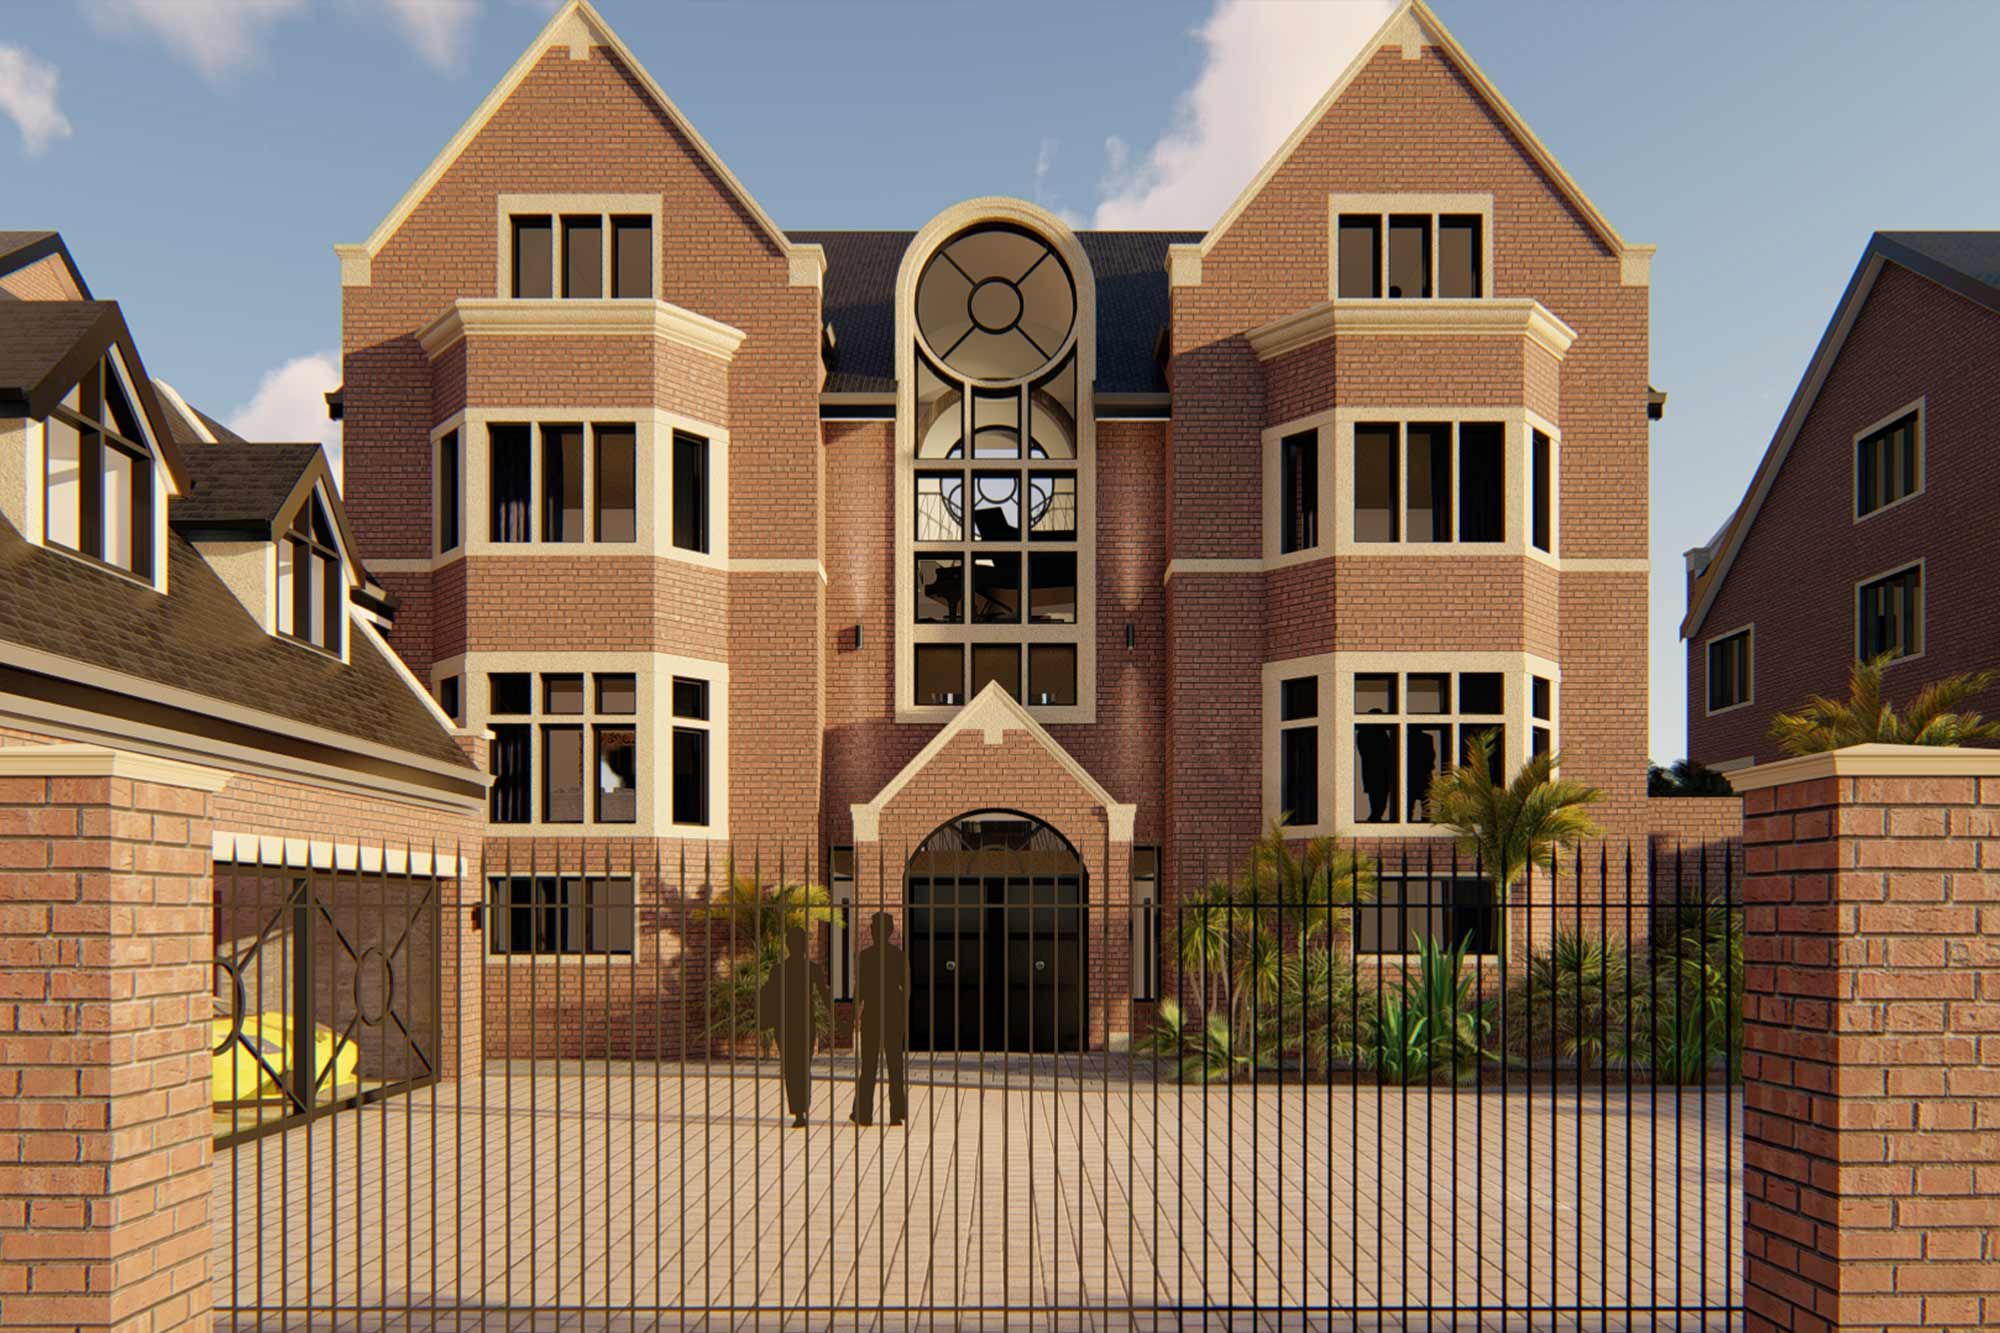 Large executive home re-model, extension and contemporary facelift in Lytham Quays, Lytham St'Annes, Lancashire